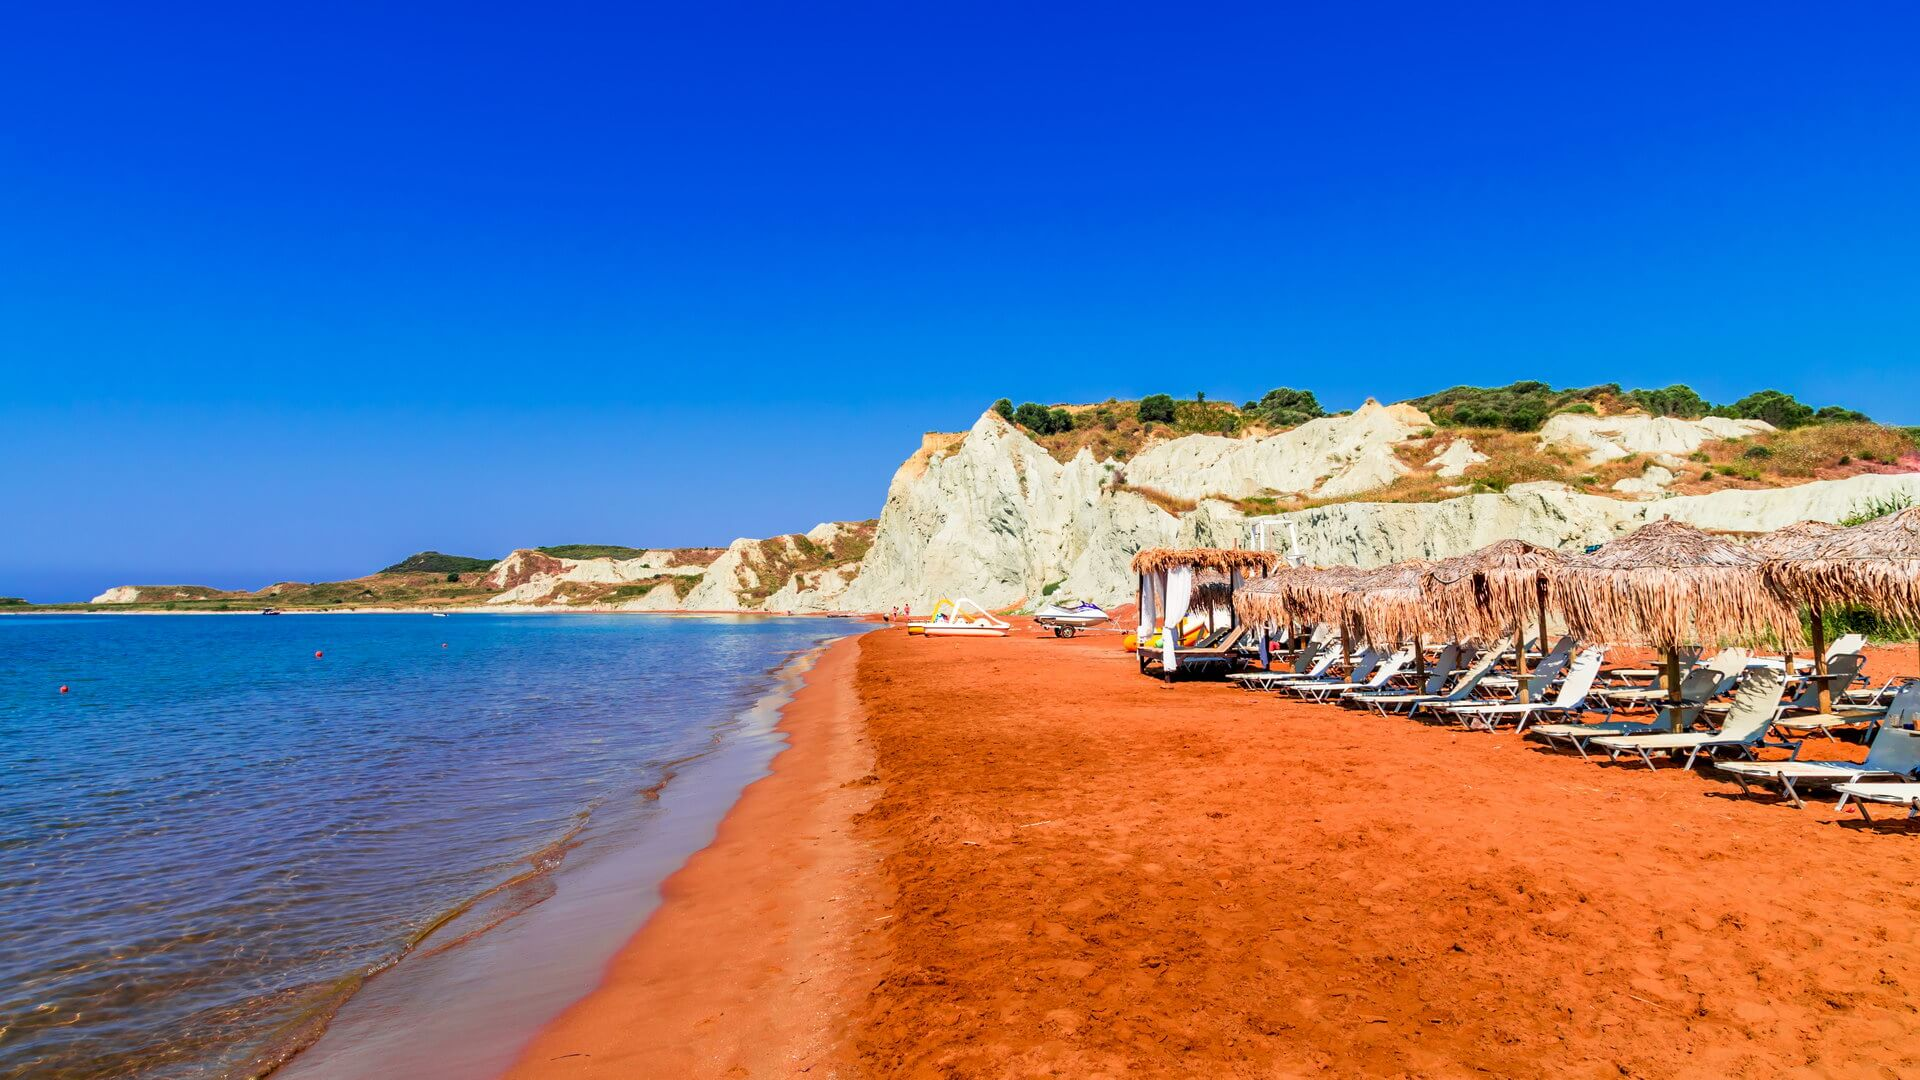 Xi beach at Lixouri Kefalonia